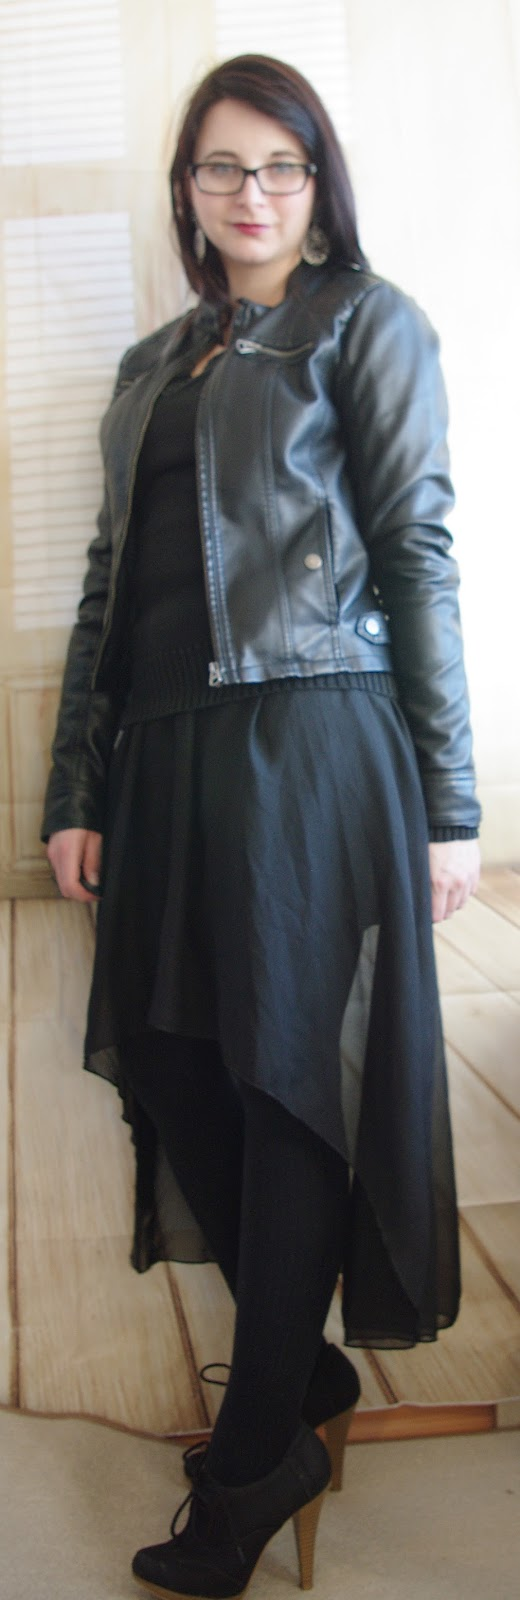 Black Vokuhila Skirt with Leather Jacket